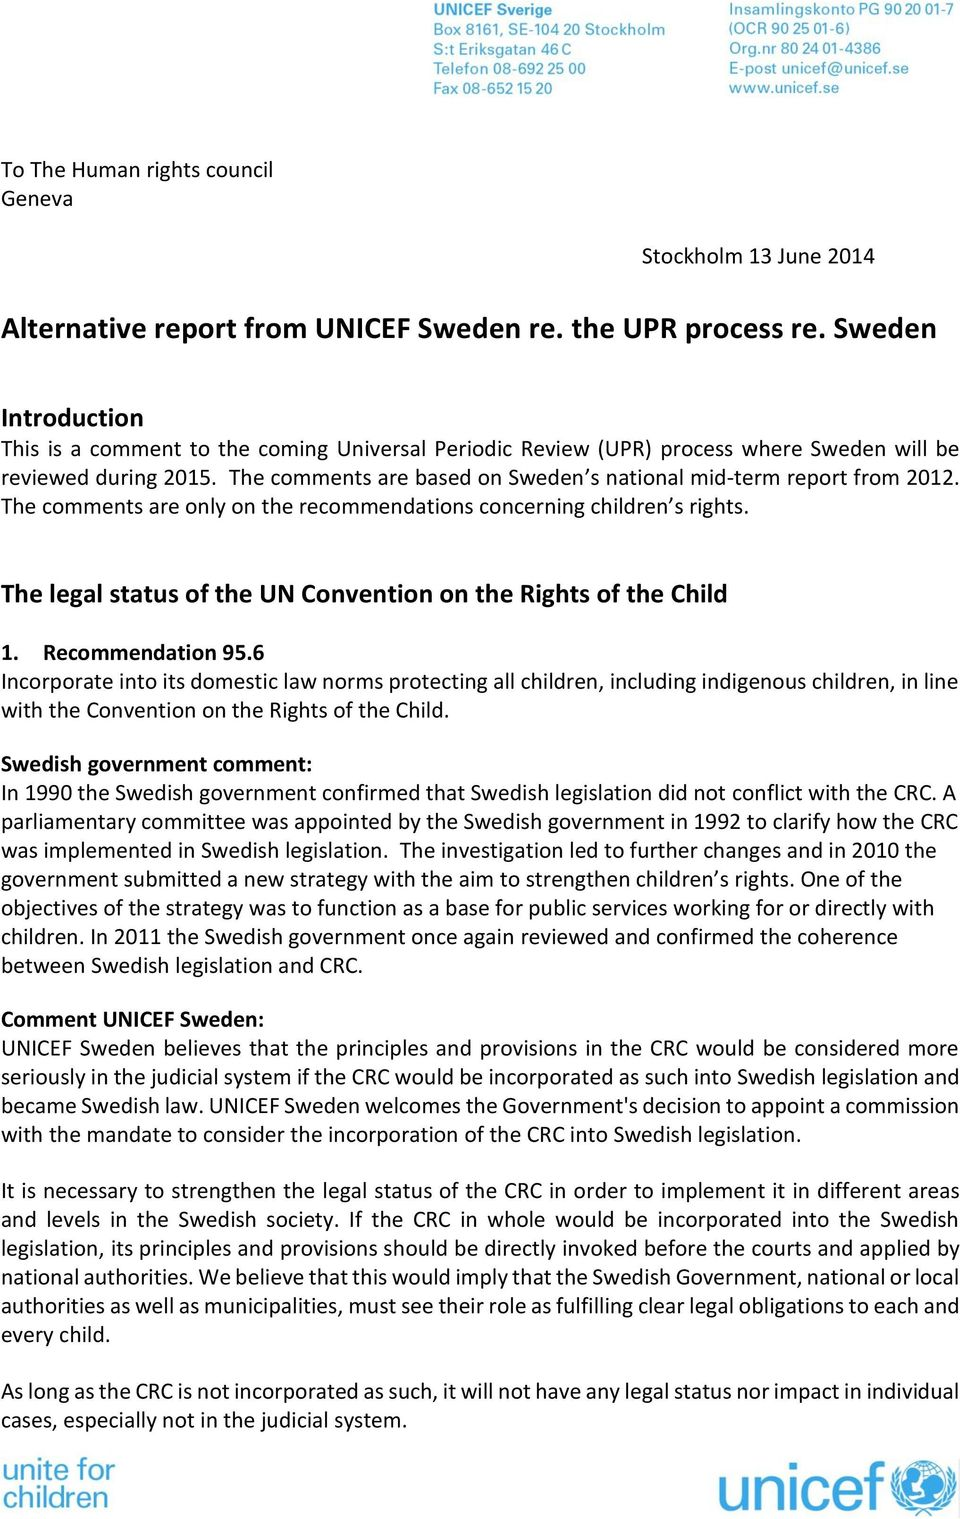 The comments are based on Sweden s national mid-term report from 2012. The comments are only on the recommendations concerning children s rights.